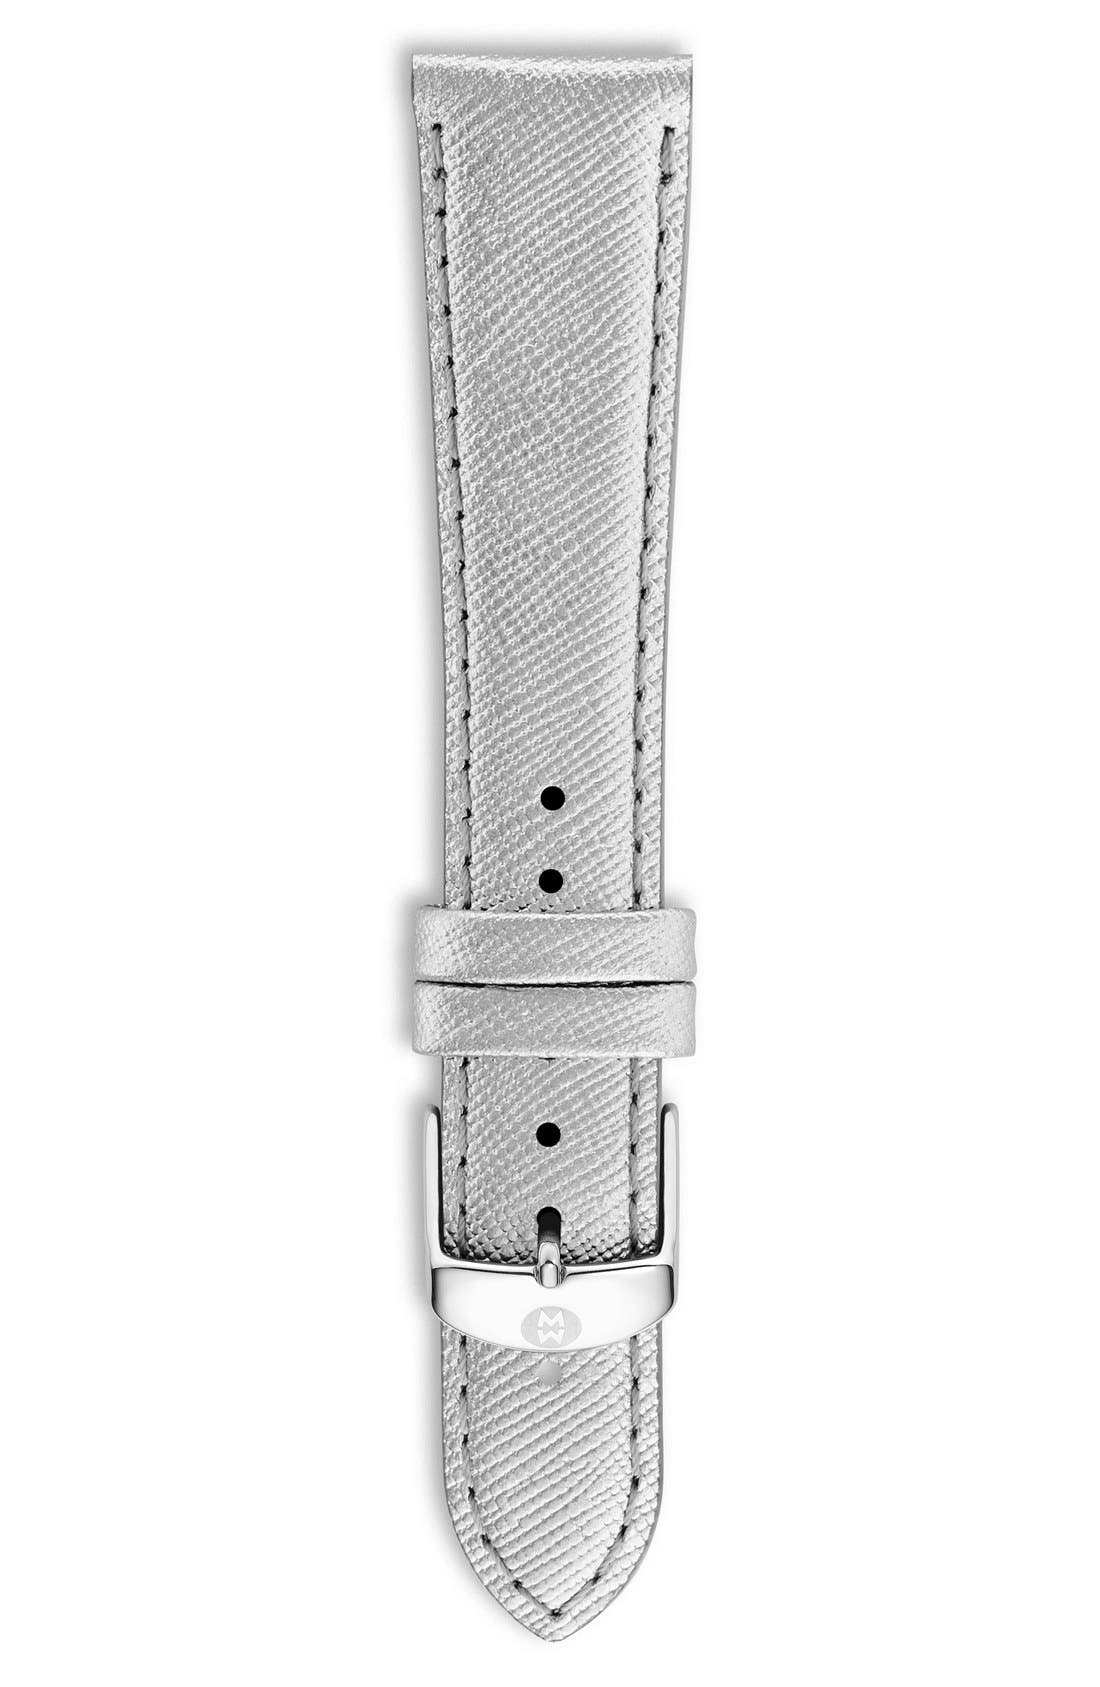 16mm Metallic Leather Watch Strap,                         Main,                         color, Metallic C